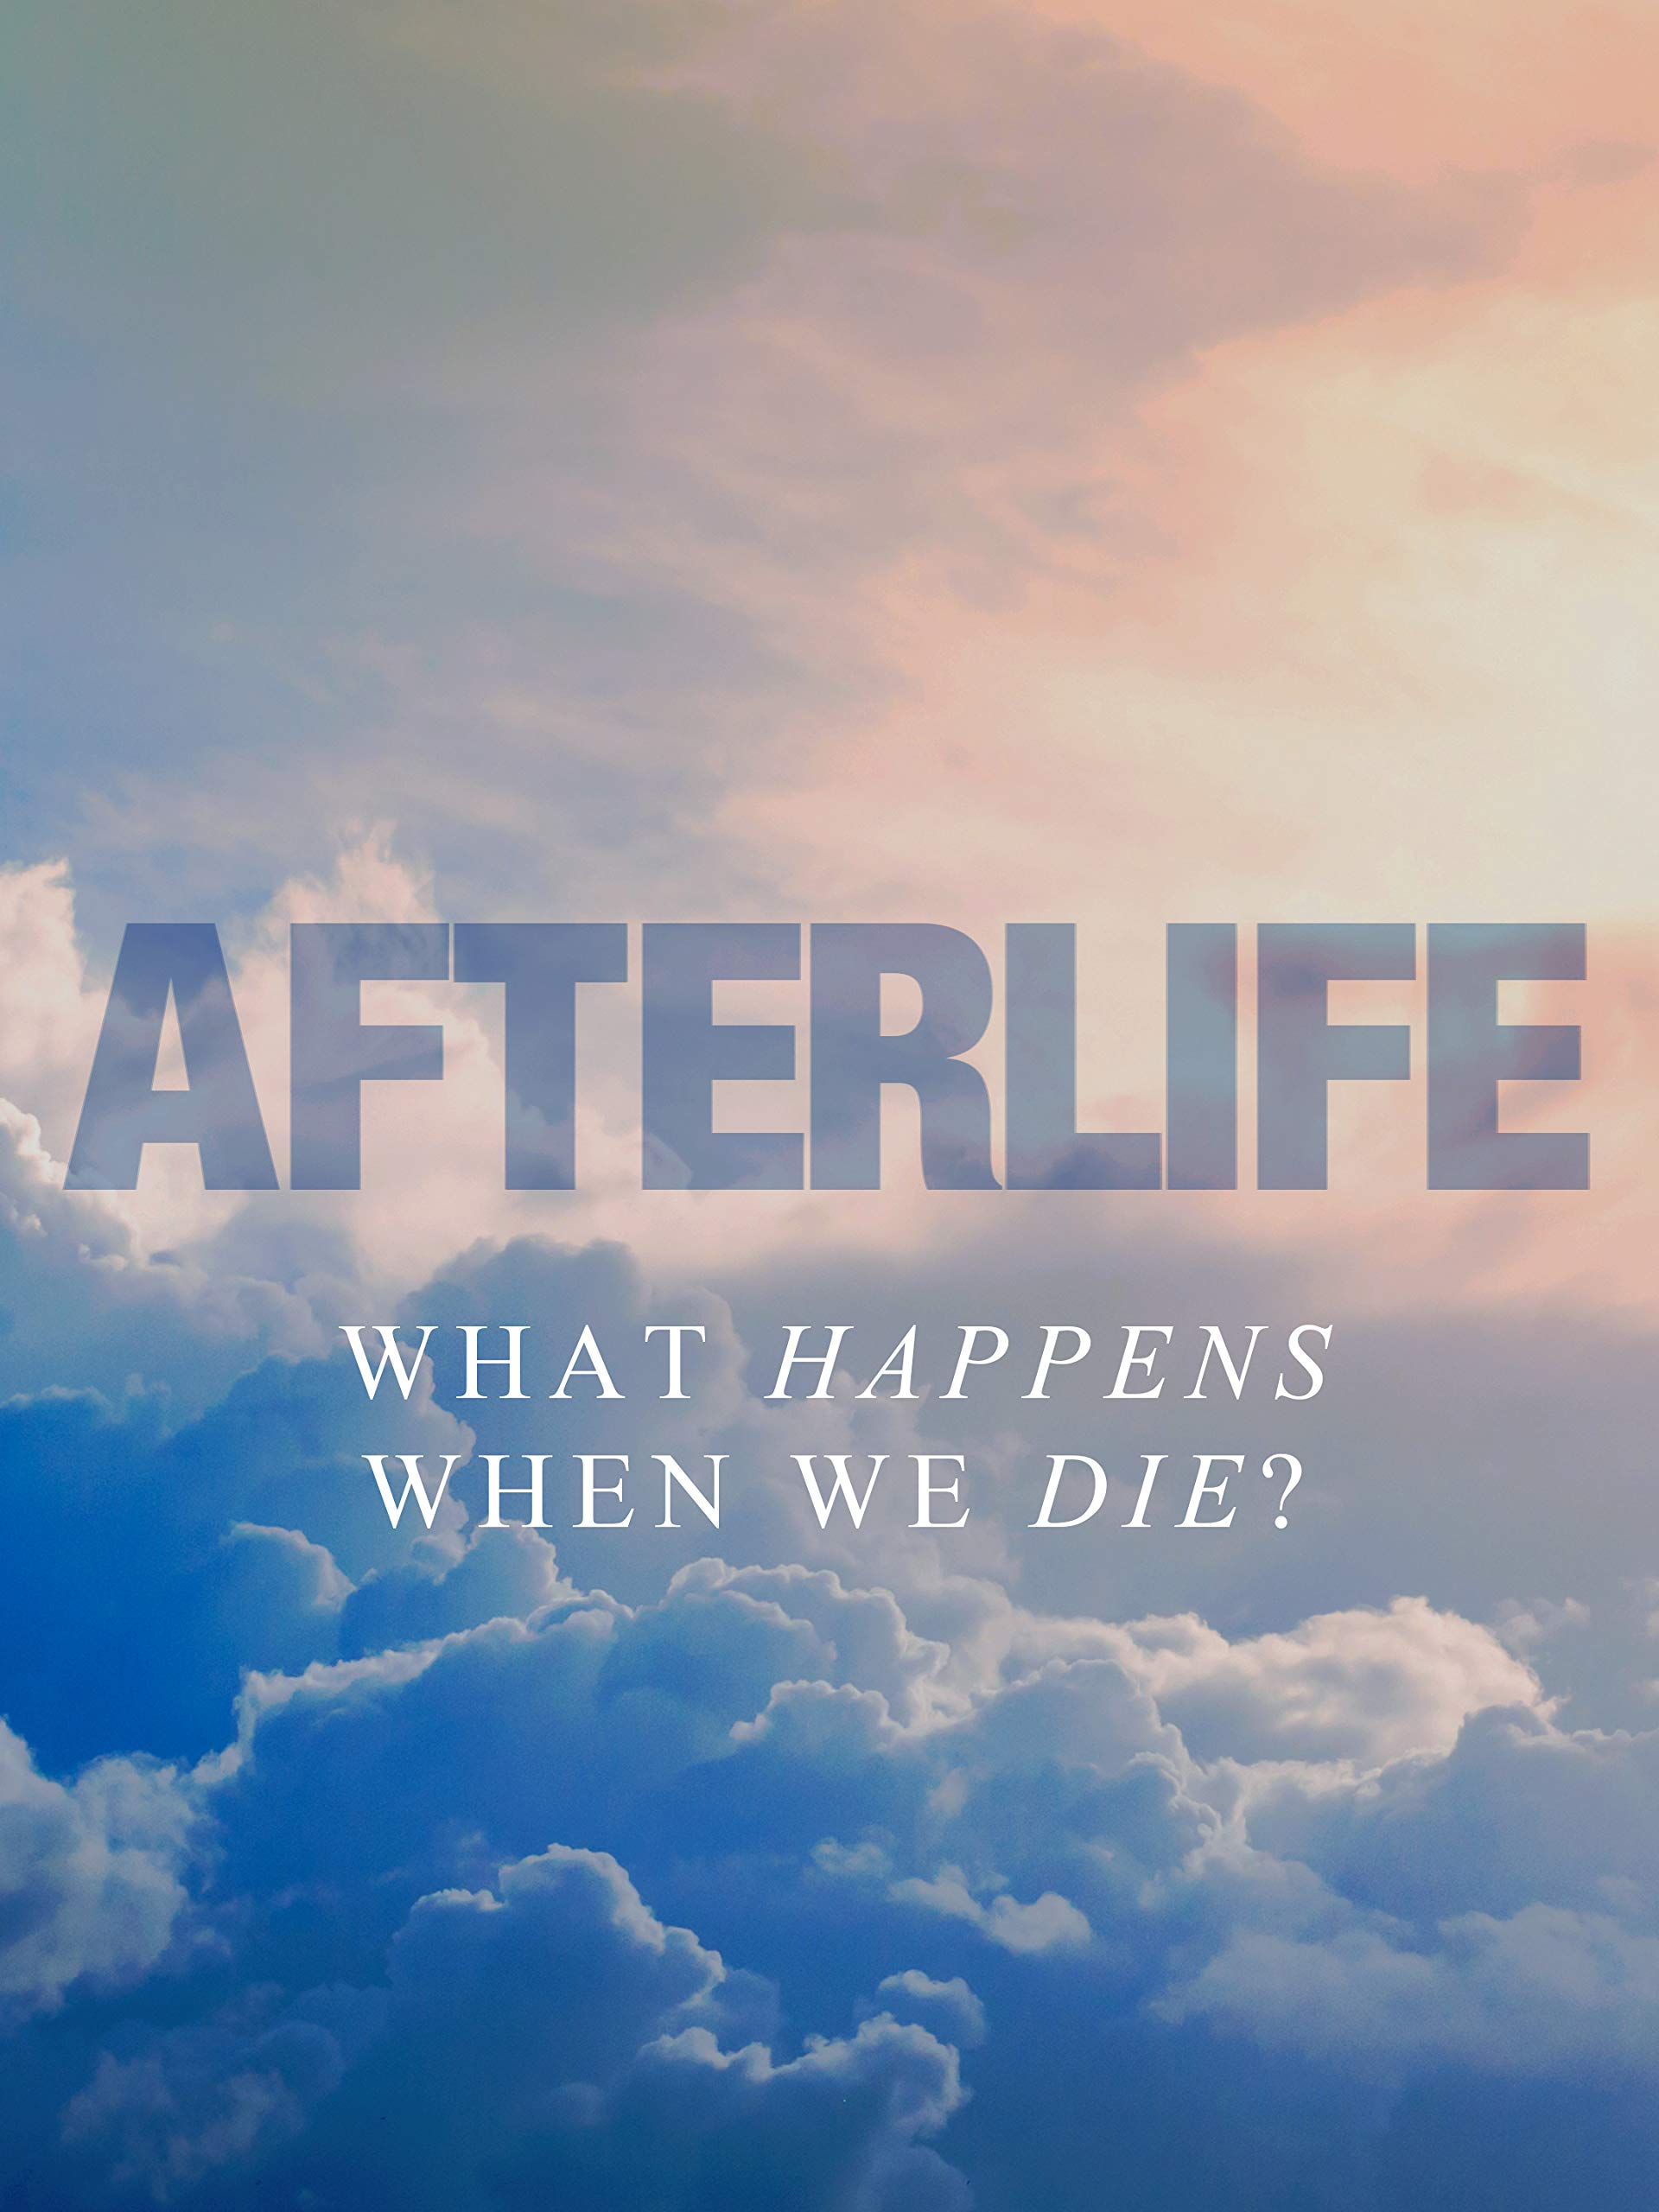 Amazon.com: Afterlife: Paul Perry, Raymond Moody, Jeff Long, Martha ...